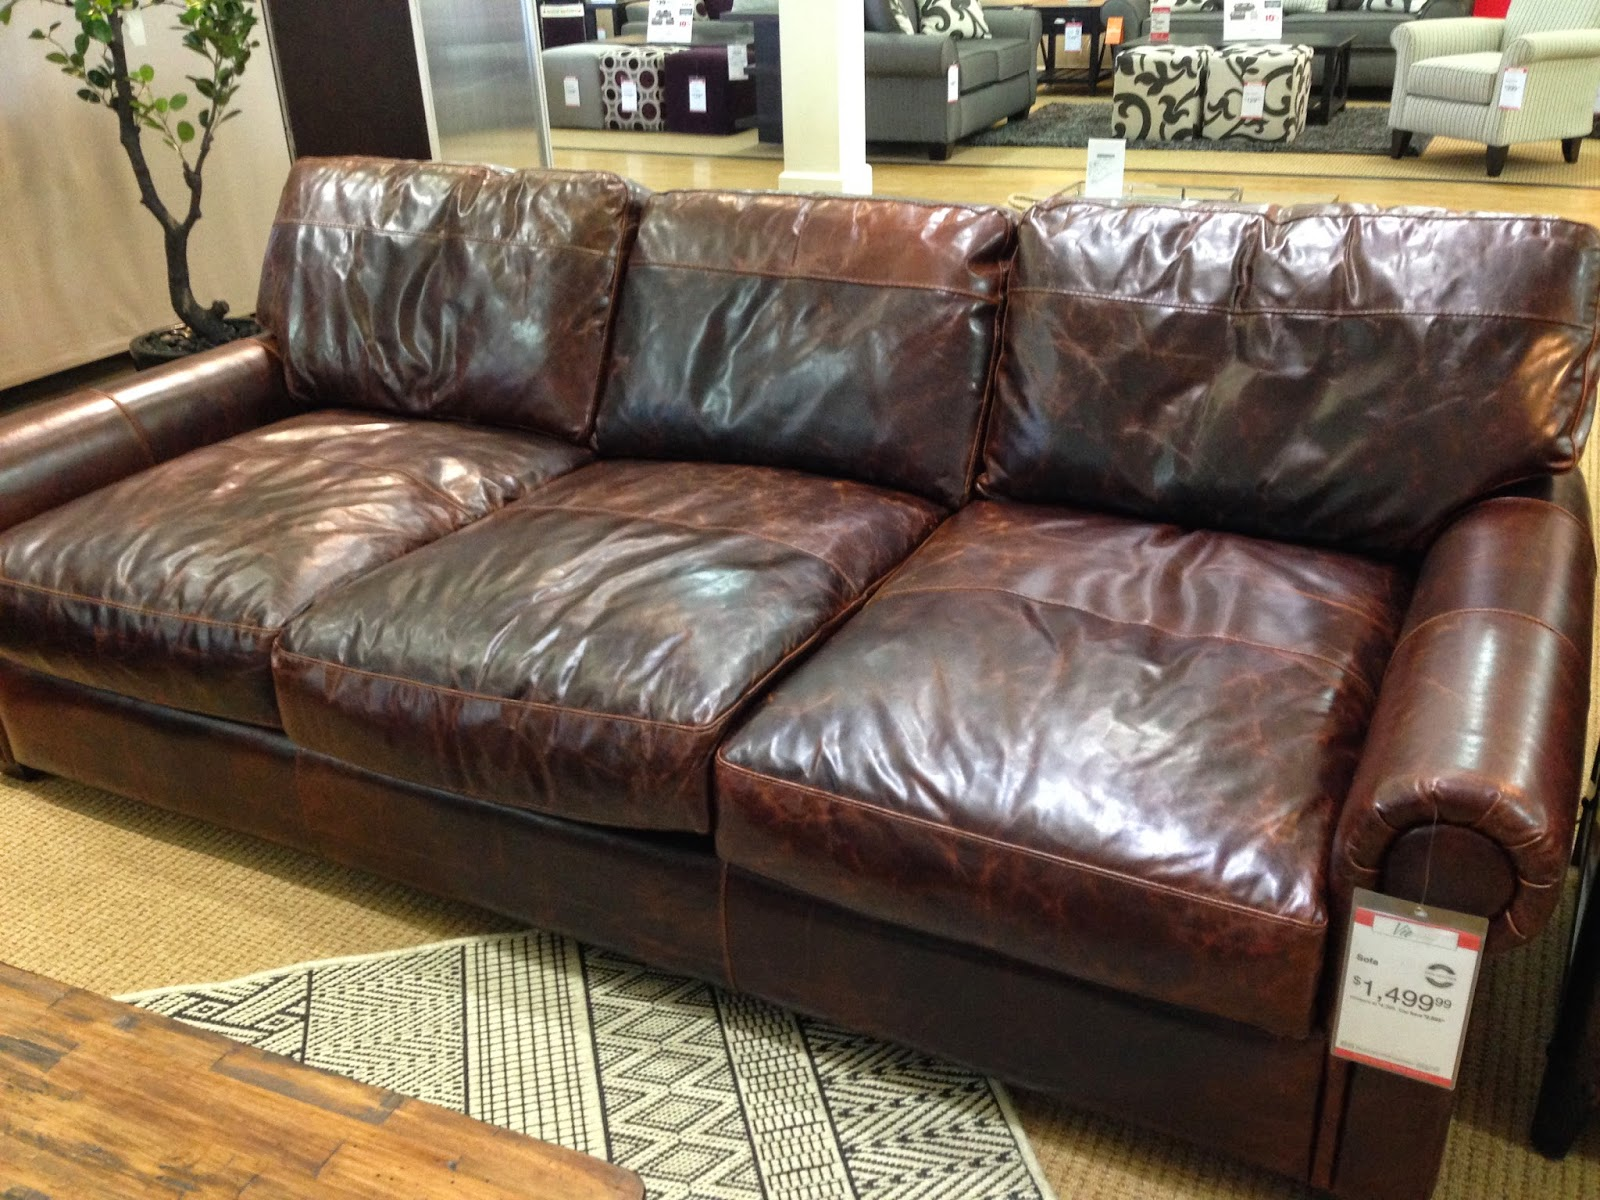 Captivating Restoration Hardware *Knock Off* Couch